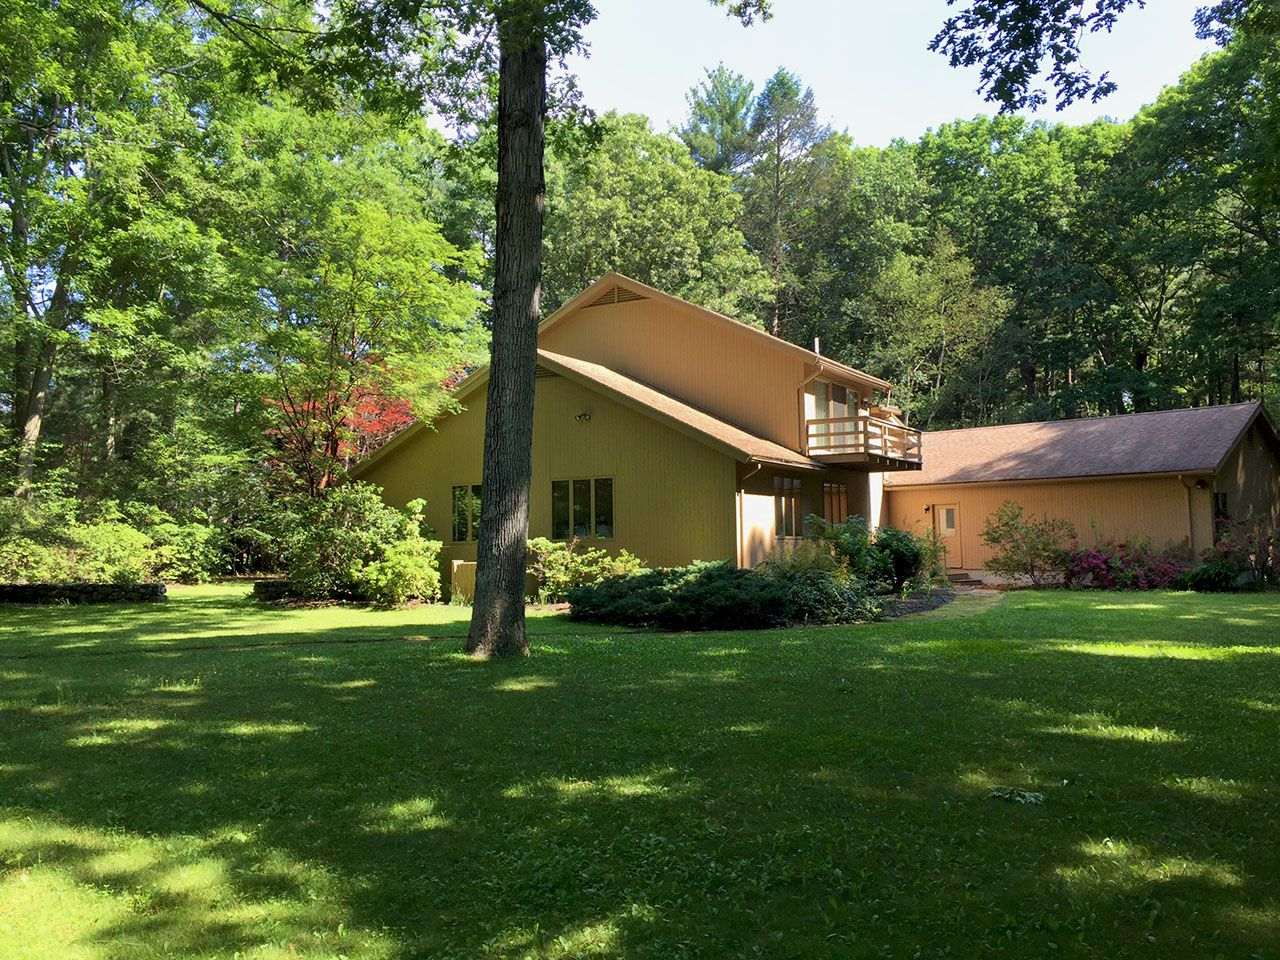 Single Family Home for Sale at 301 Musterfield Road Concord, Massachusetts,01742 United States